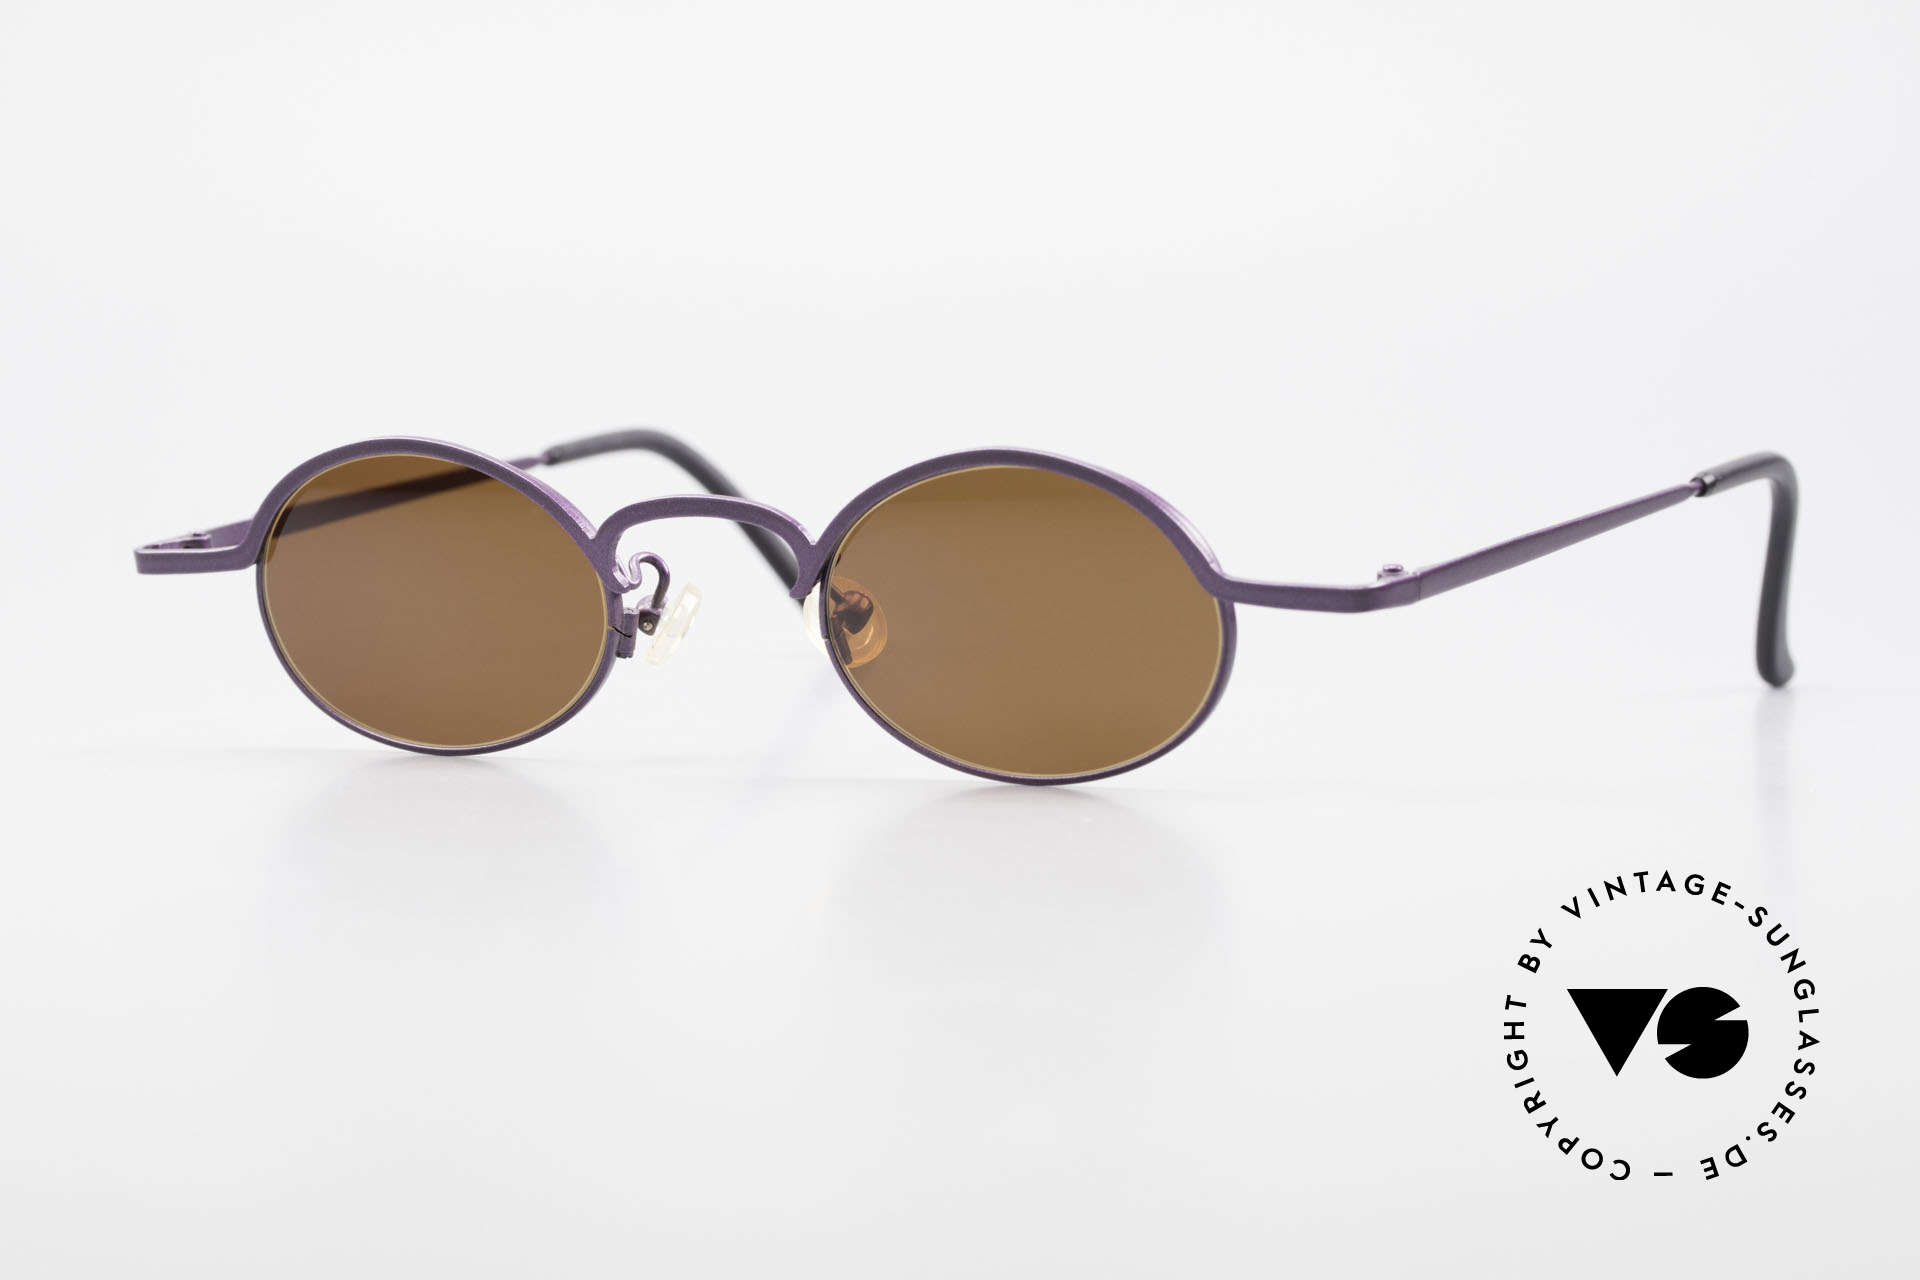 Theo Belgium San 90's Oval Designer Sunglasses, Theo Belgium: the most self-willed brand in the world, Made for Women